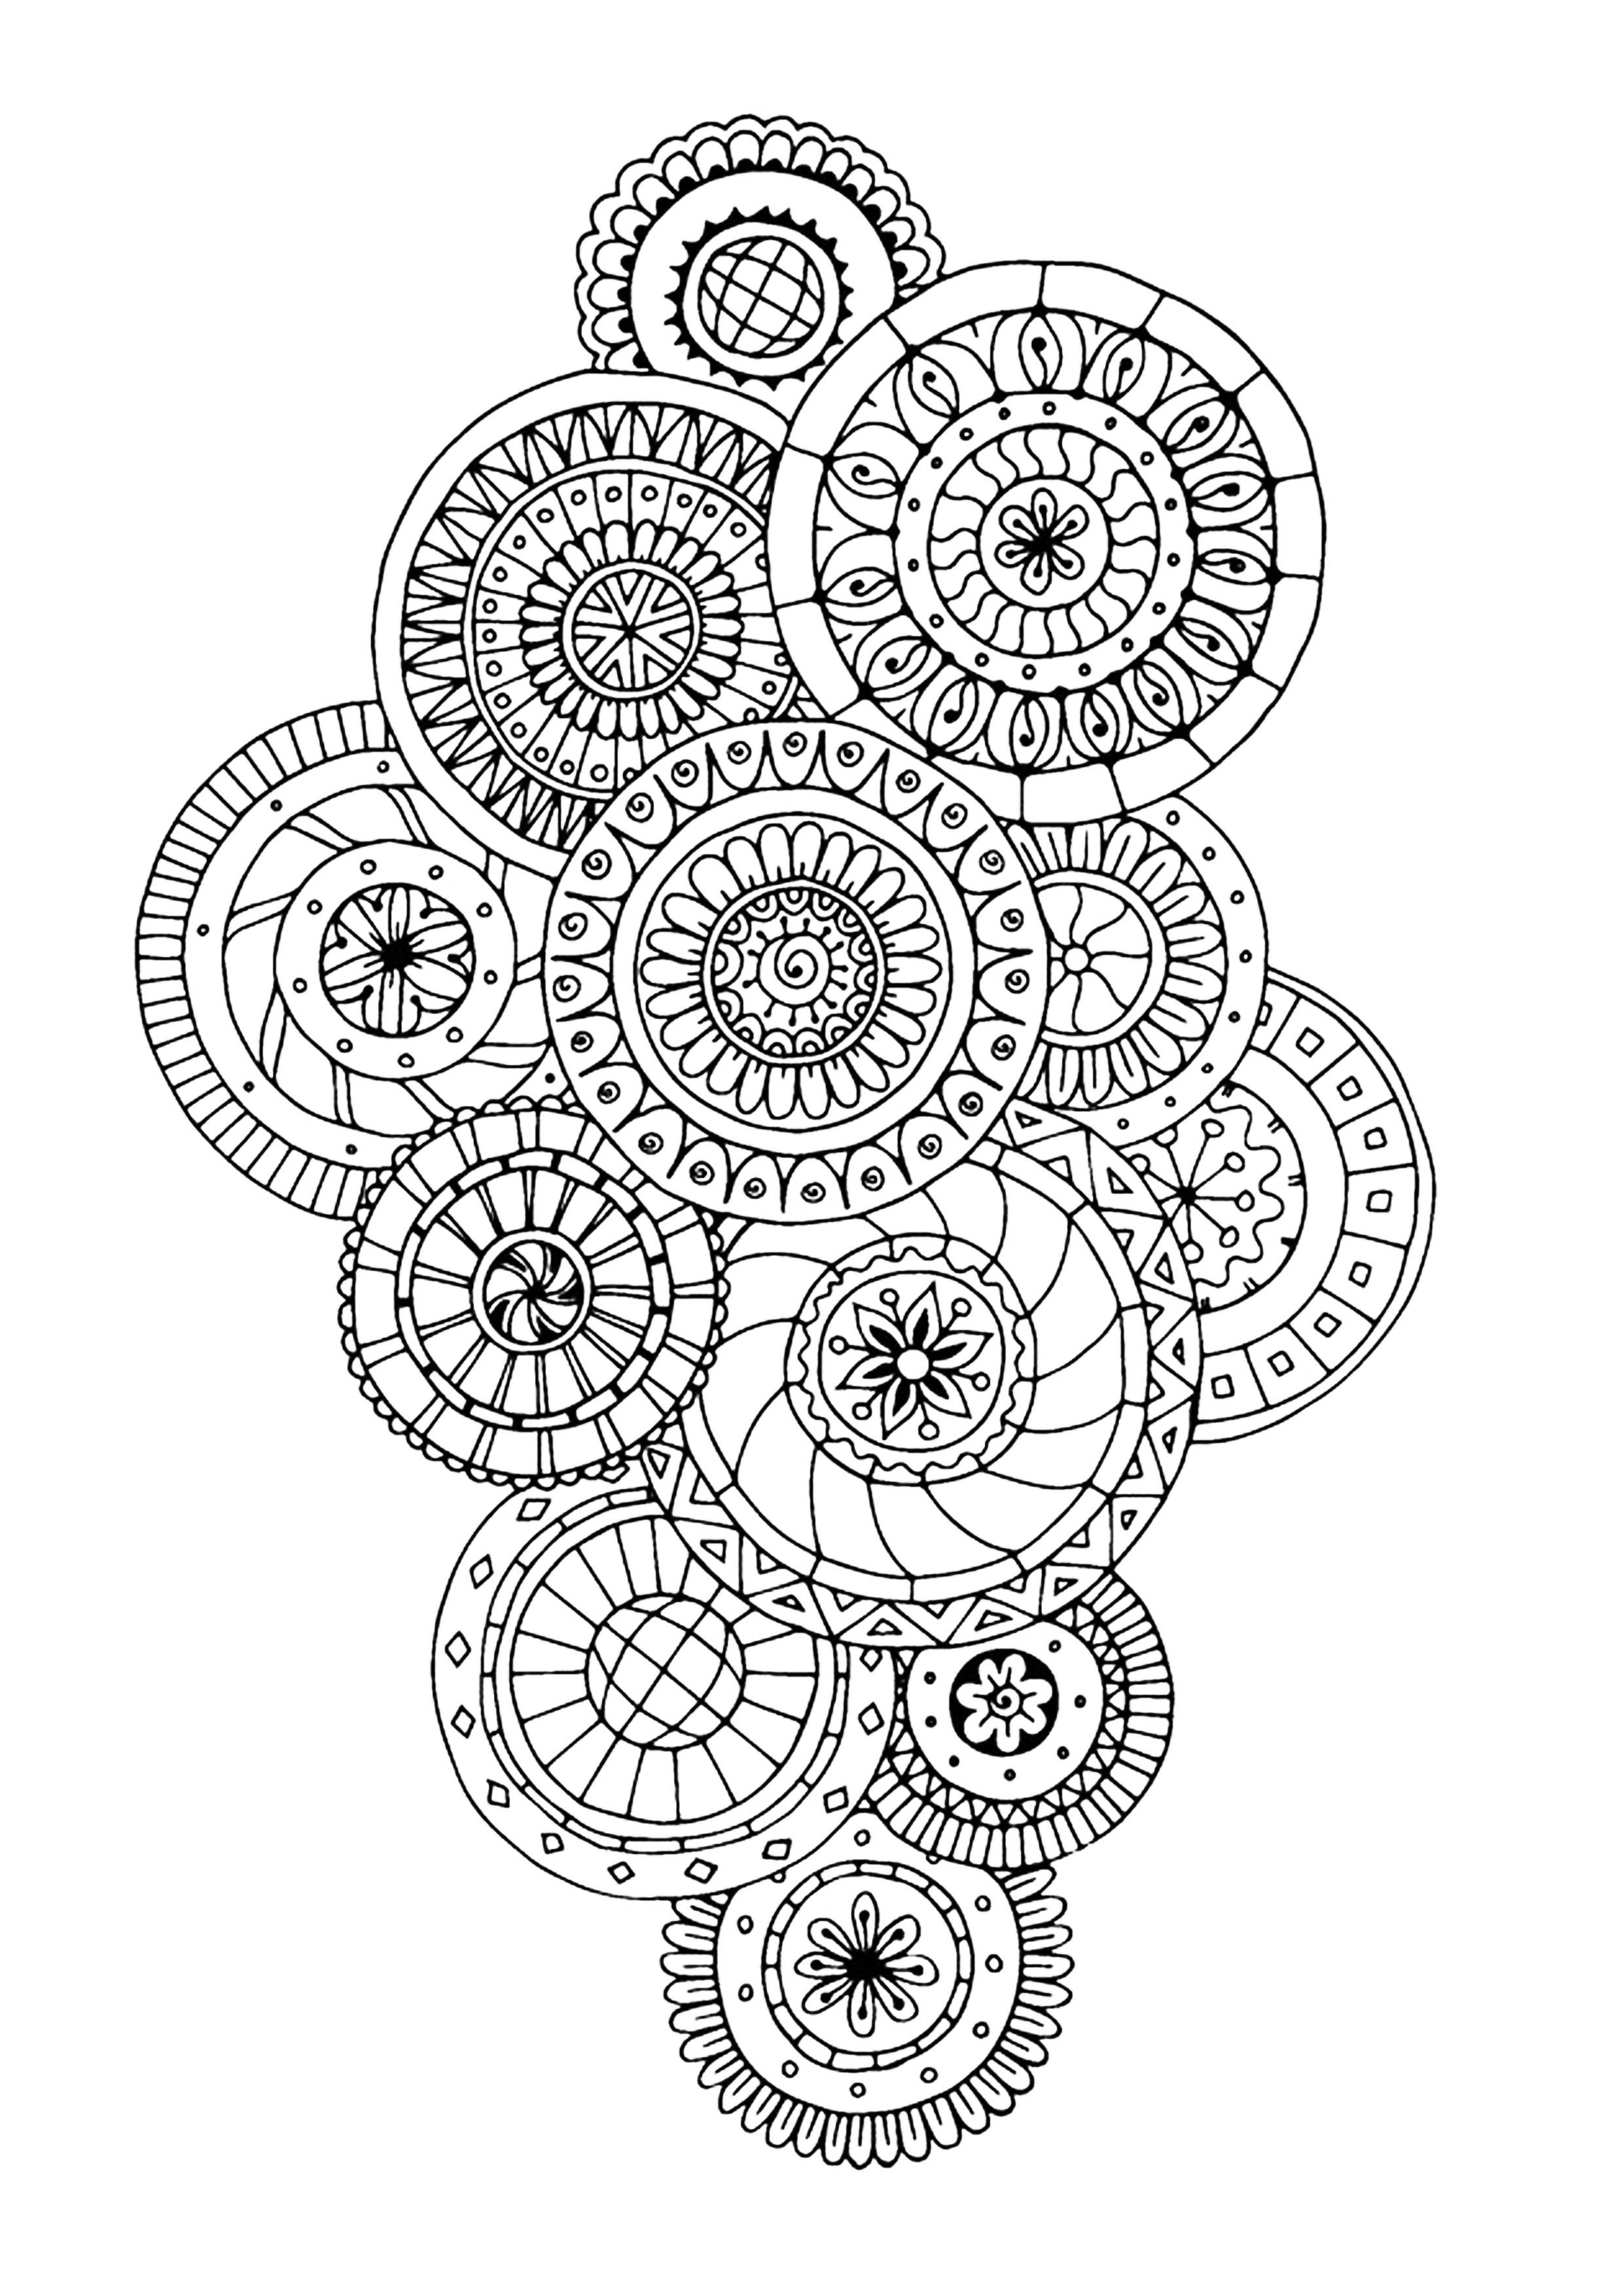 free zen coloring pages zen coloring download zen coloring for free 2019 coloring free zen pages